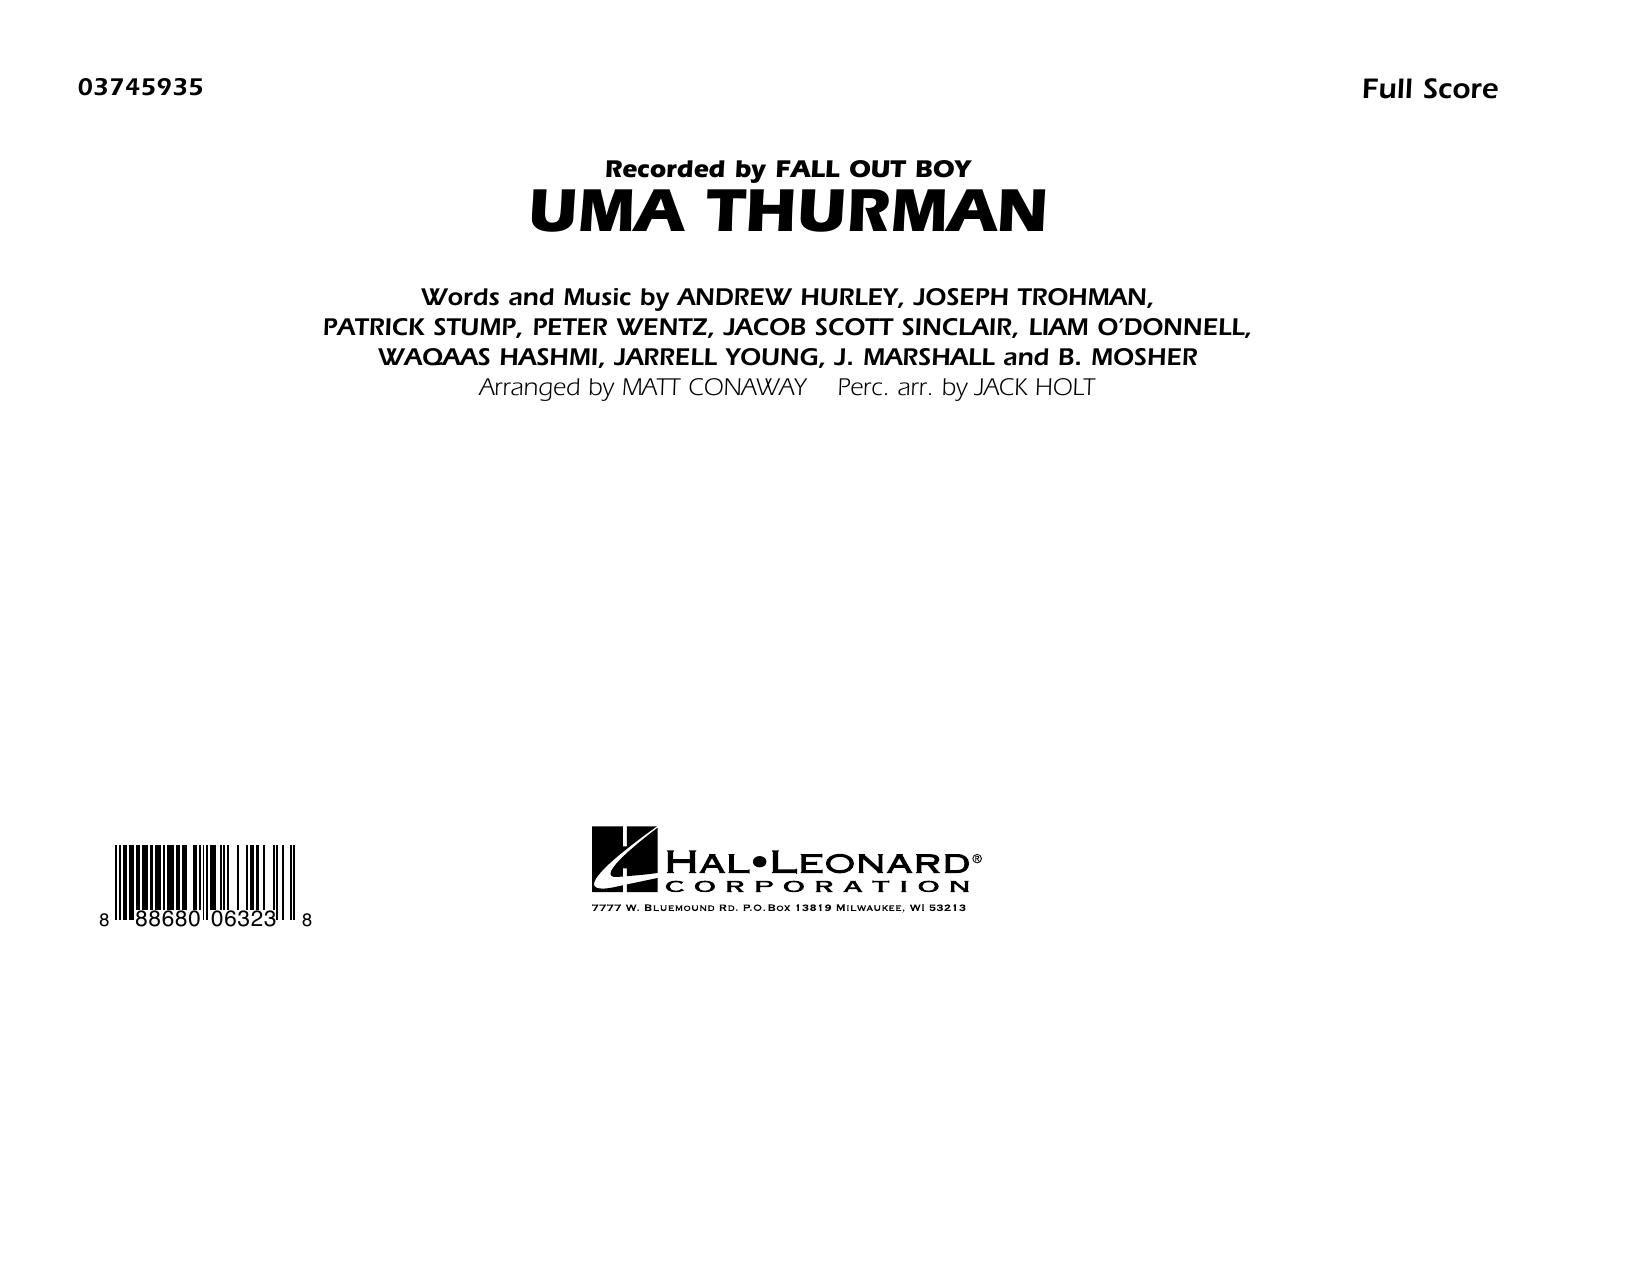 Uma Thurman (COMPLETE) sheet music for marching band by Fall Out Boy and Matt Conaway. Score Image Preview.